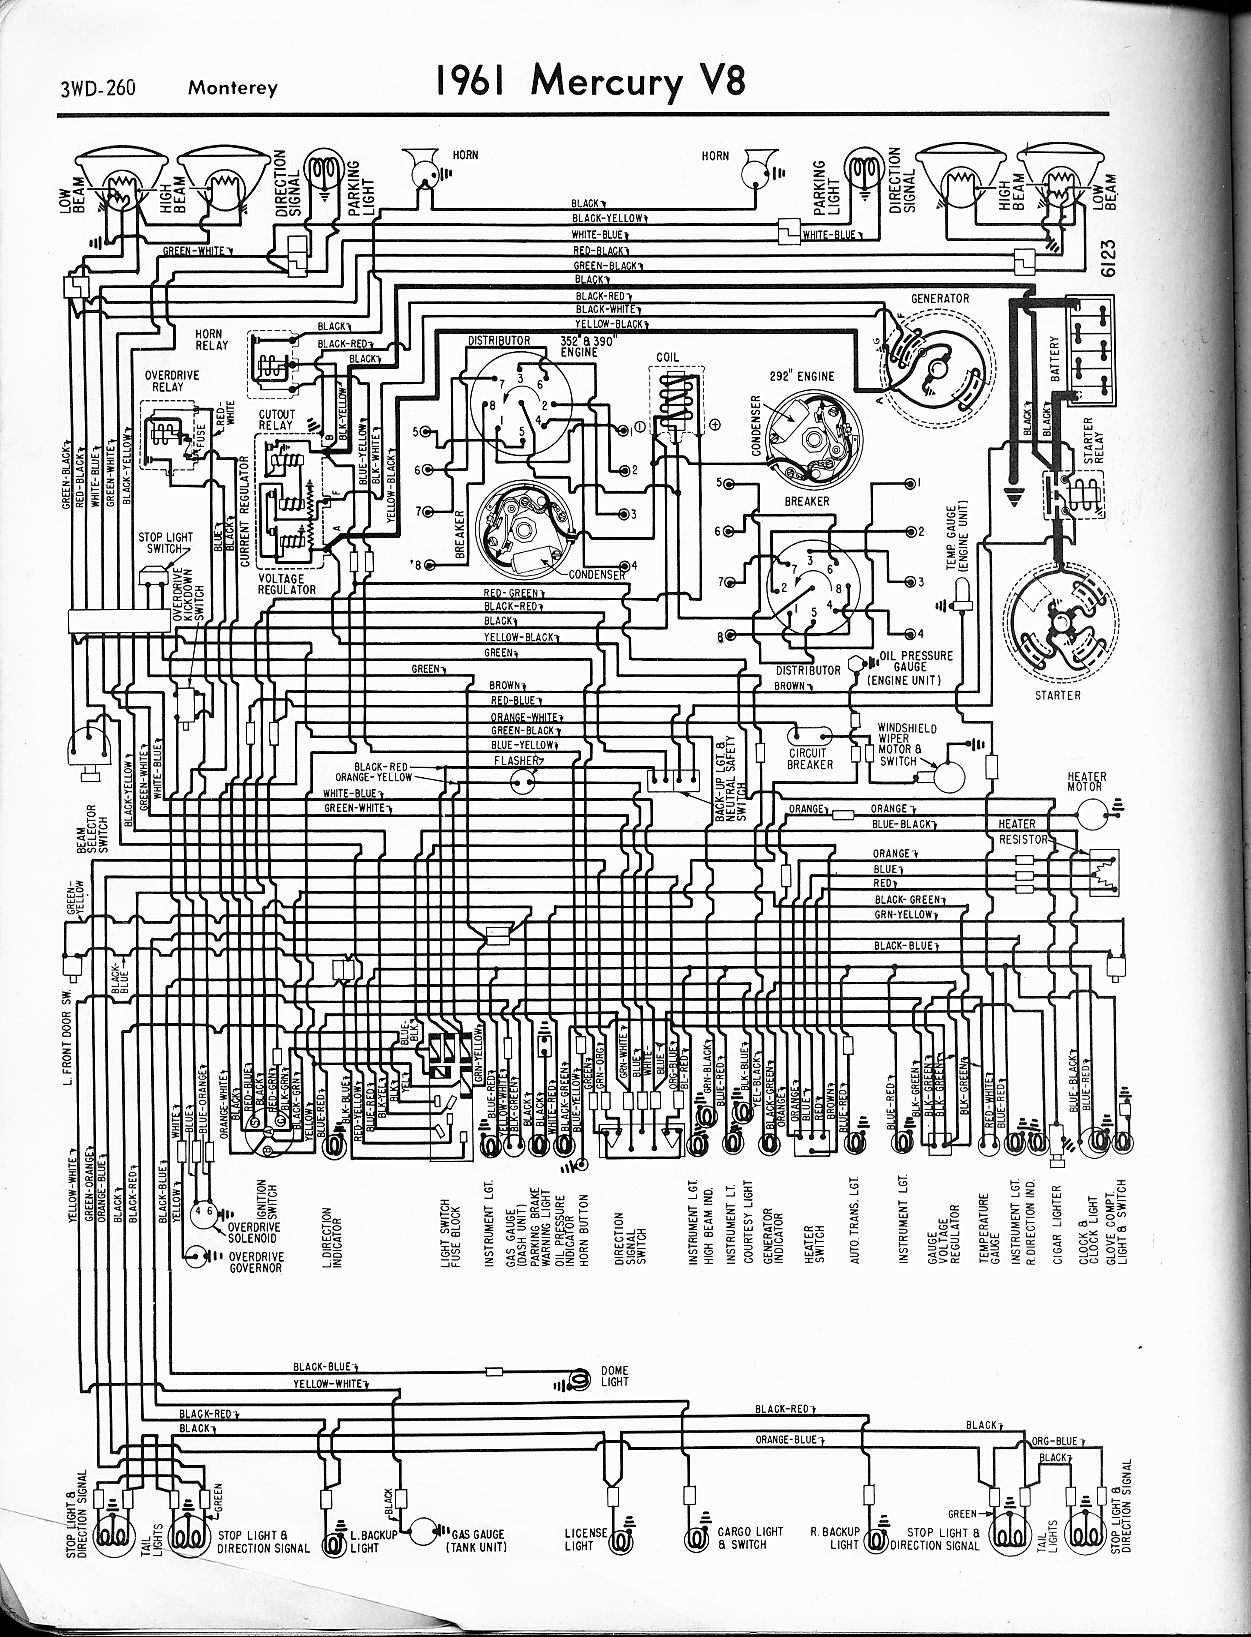 1963 mercury comet wiring diagram basic guide wiring diagram u2022 rh needpixies com